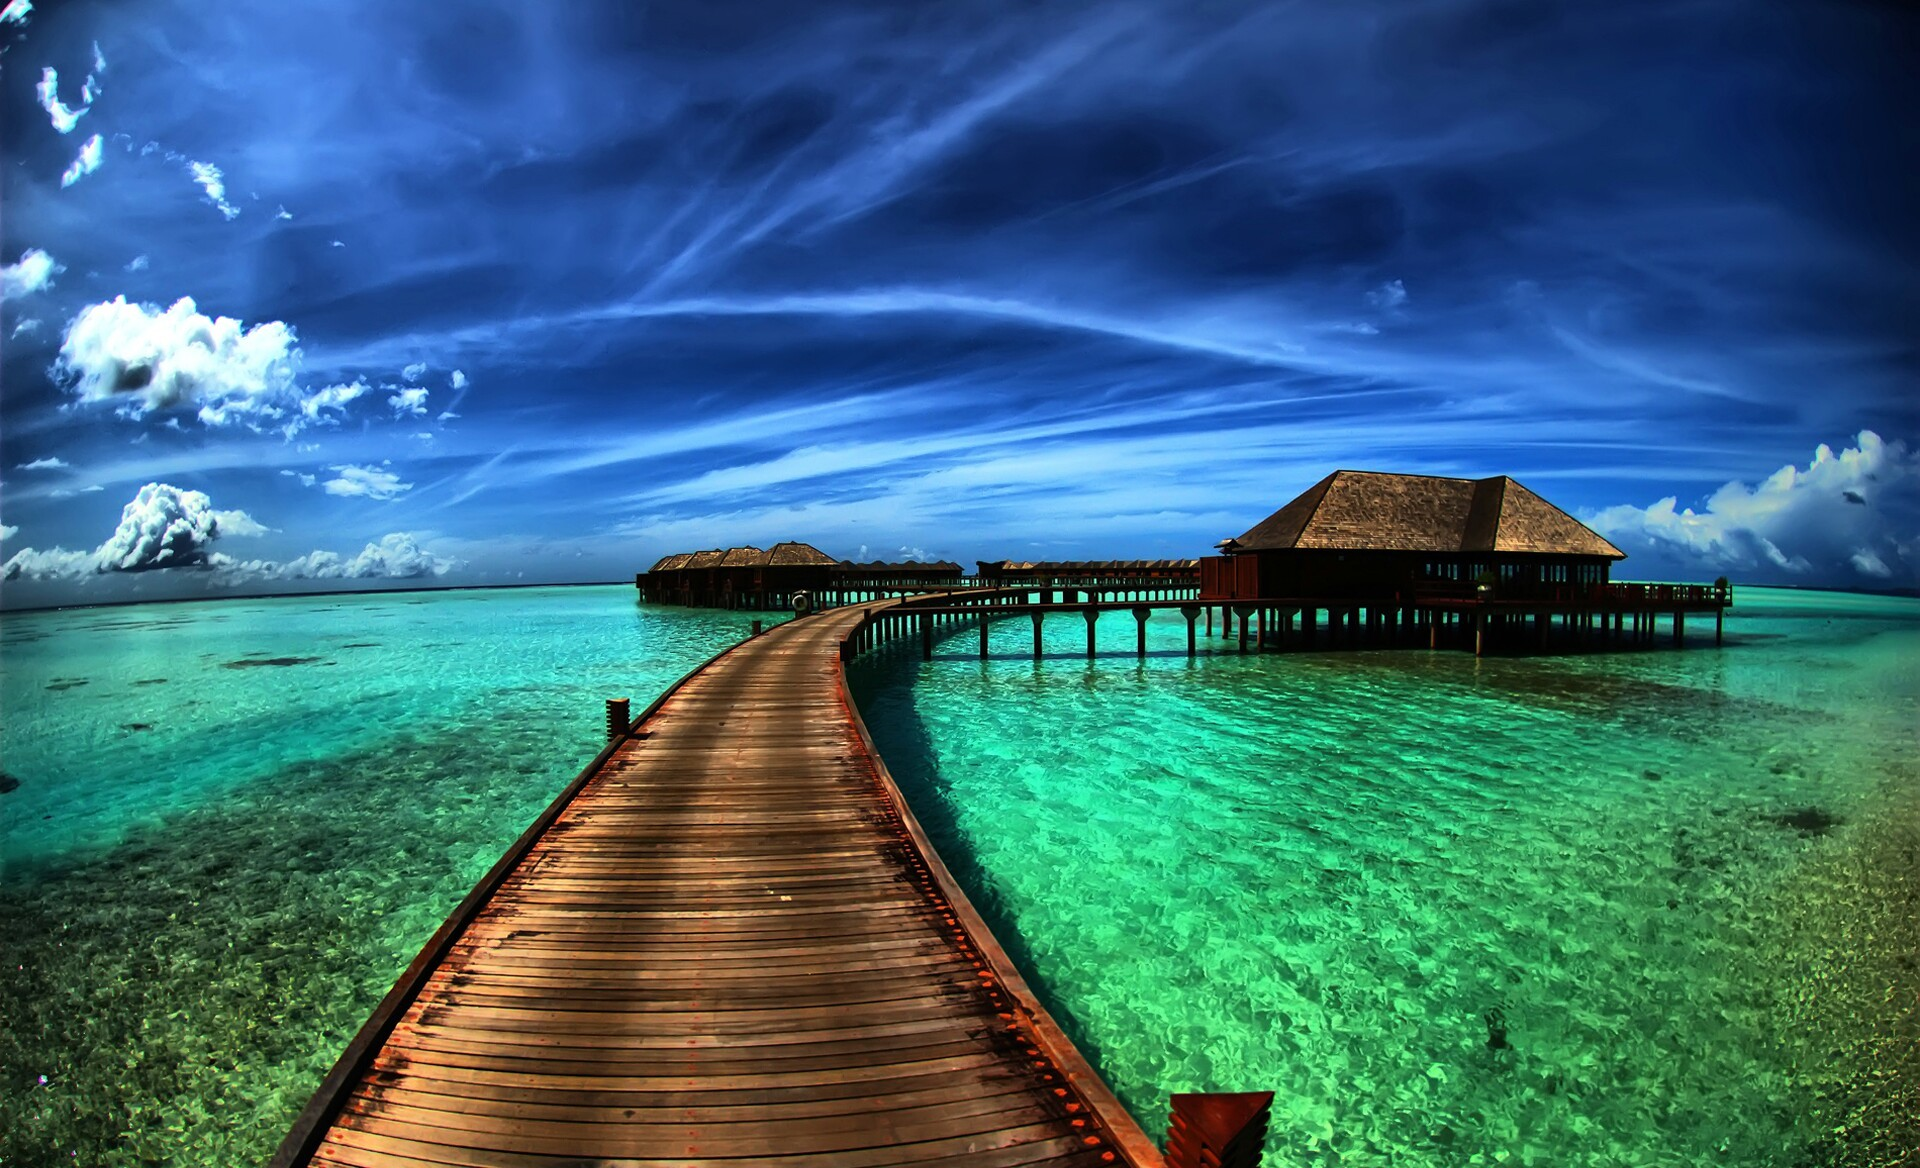 Amazing Wallpapers for Desktop (79+ images)